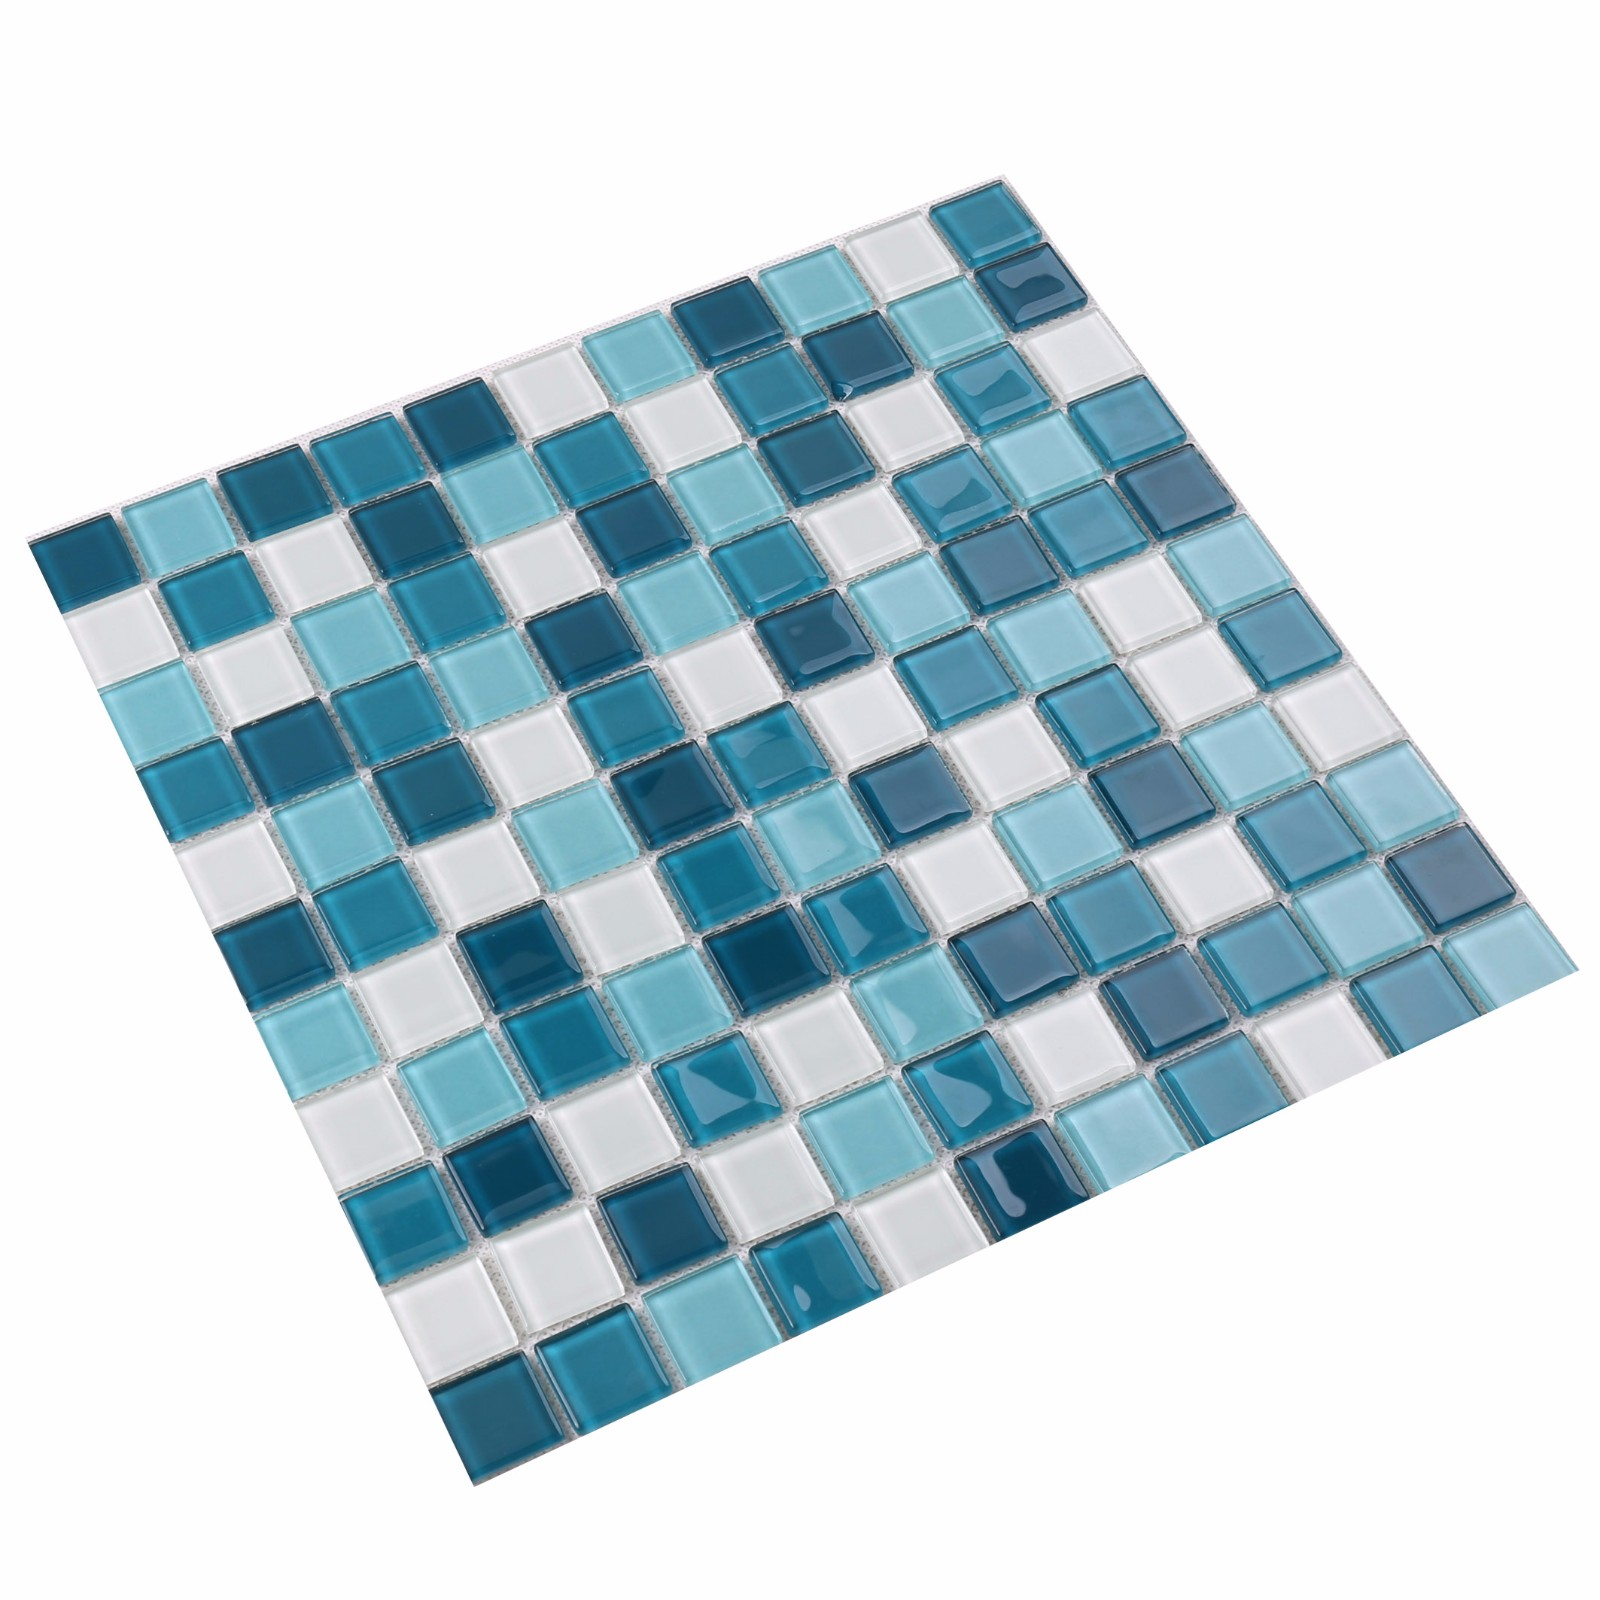 Heng Xing light blue tile mosaic personalized for spa-3